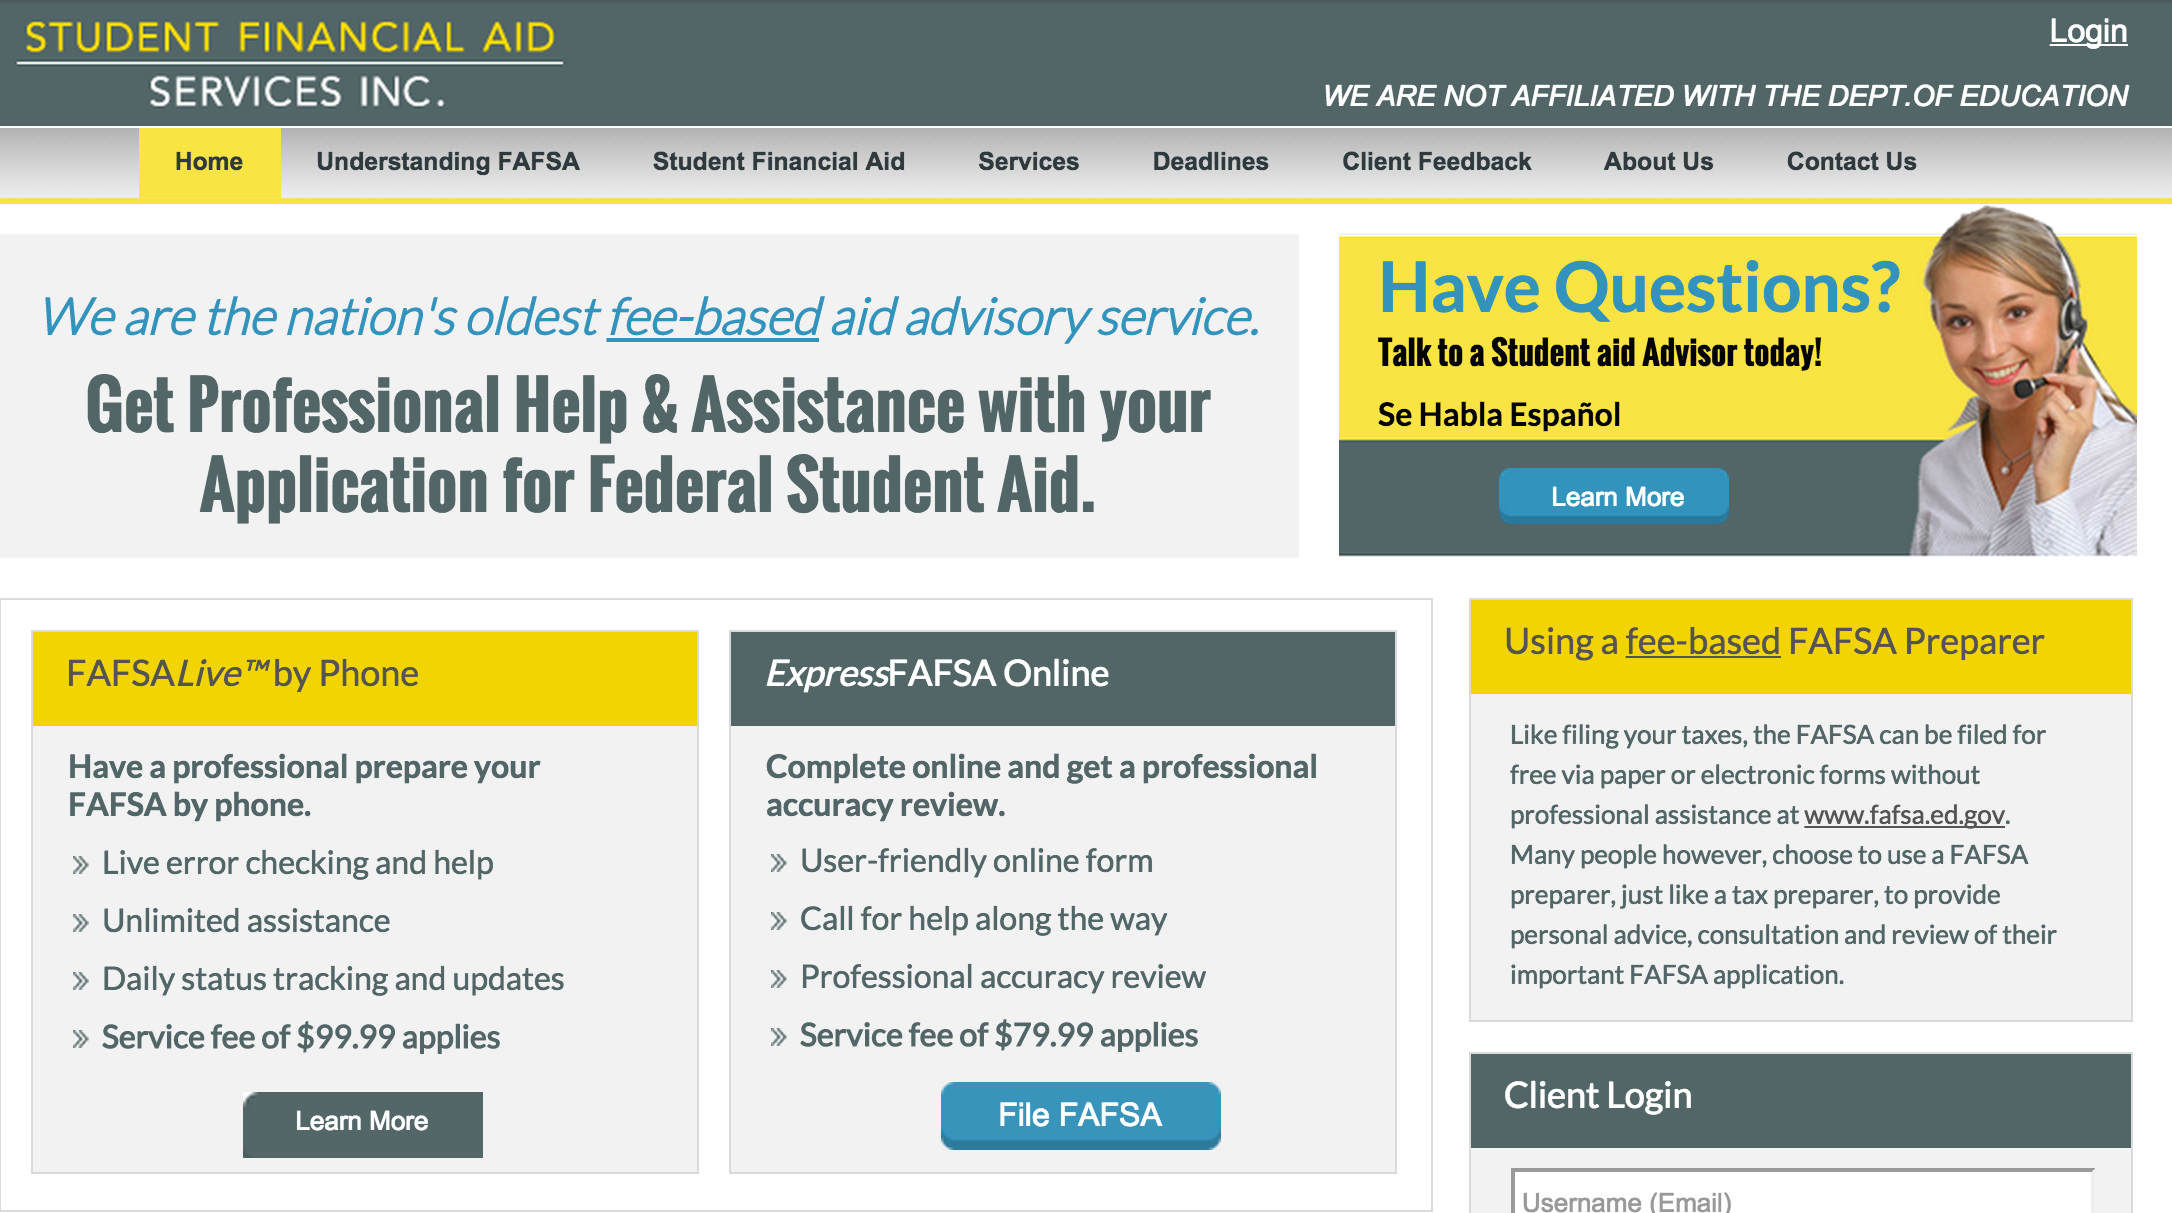 Here is what FAFSA.com looked like before the URL was handed over to the Dept. of Education.